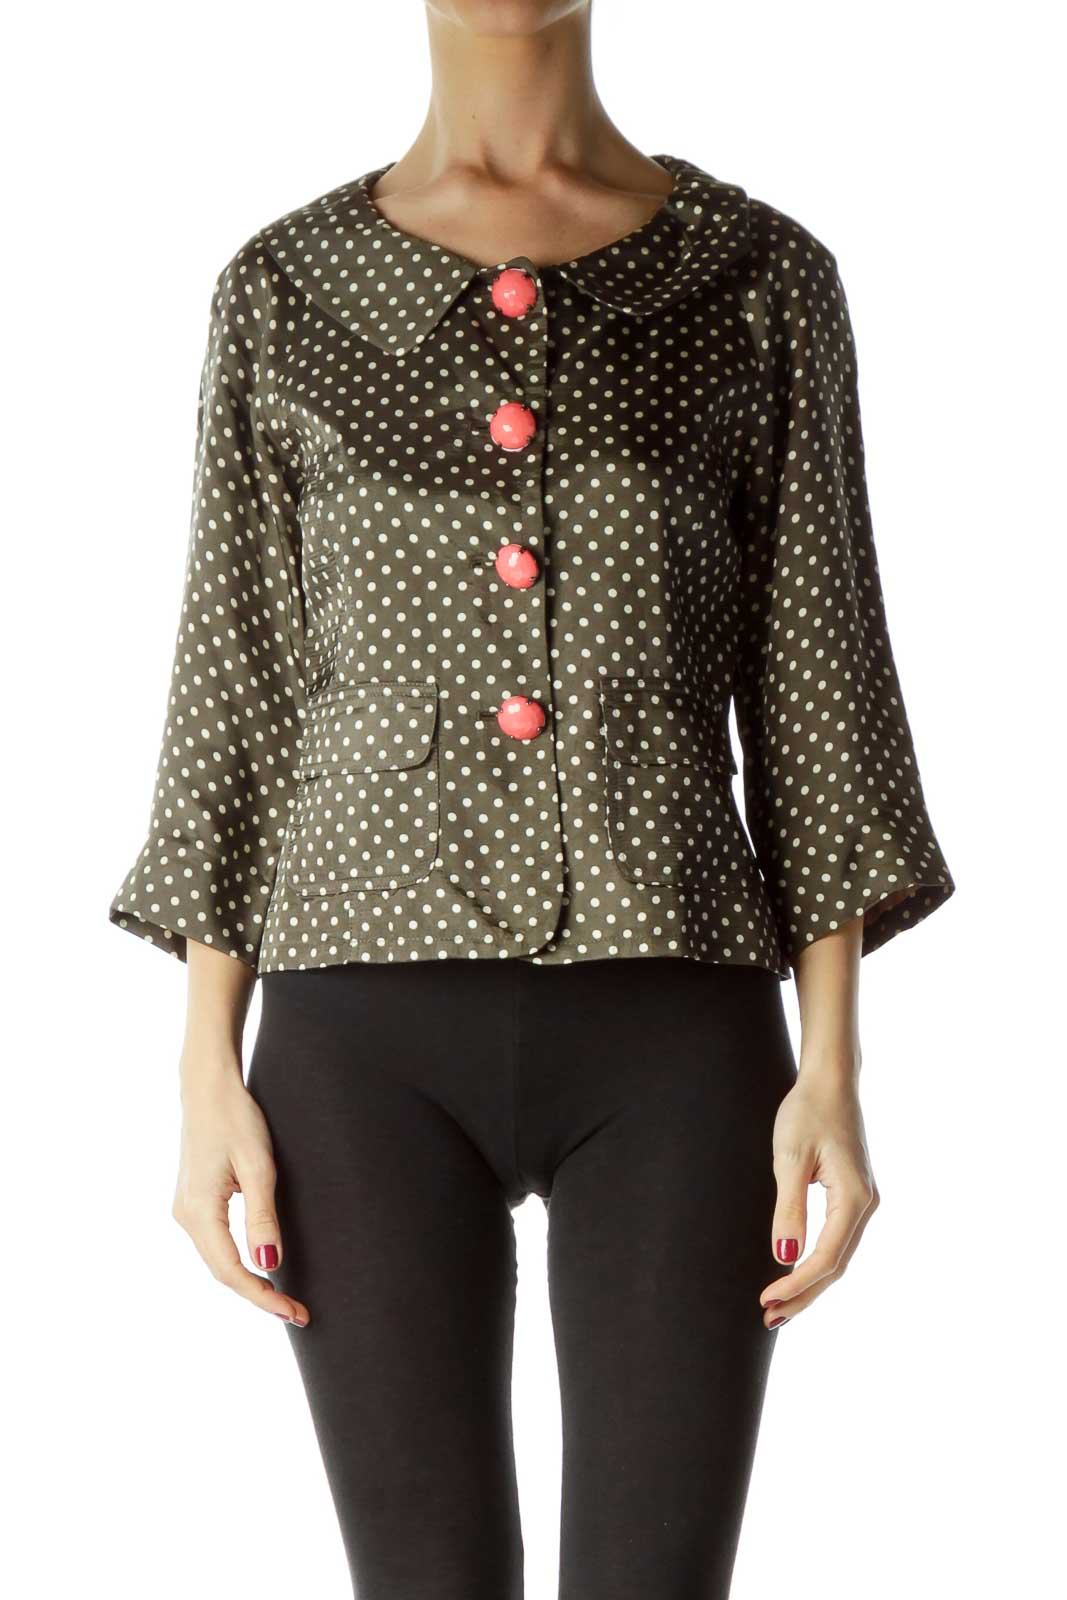 Green White Polka Dot Buttoned Jacket